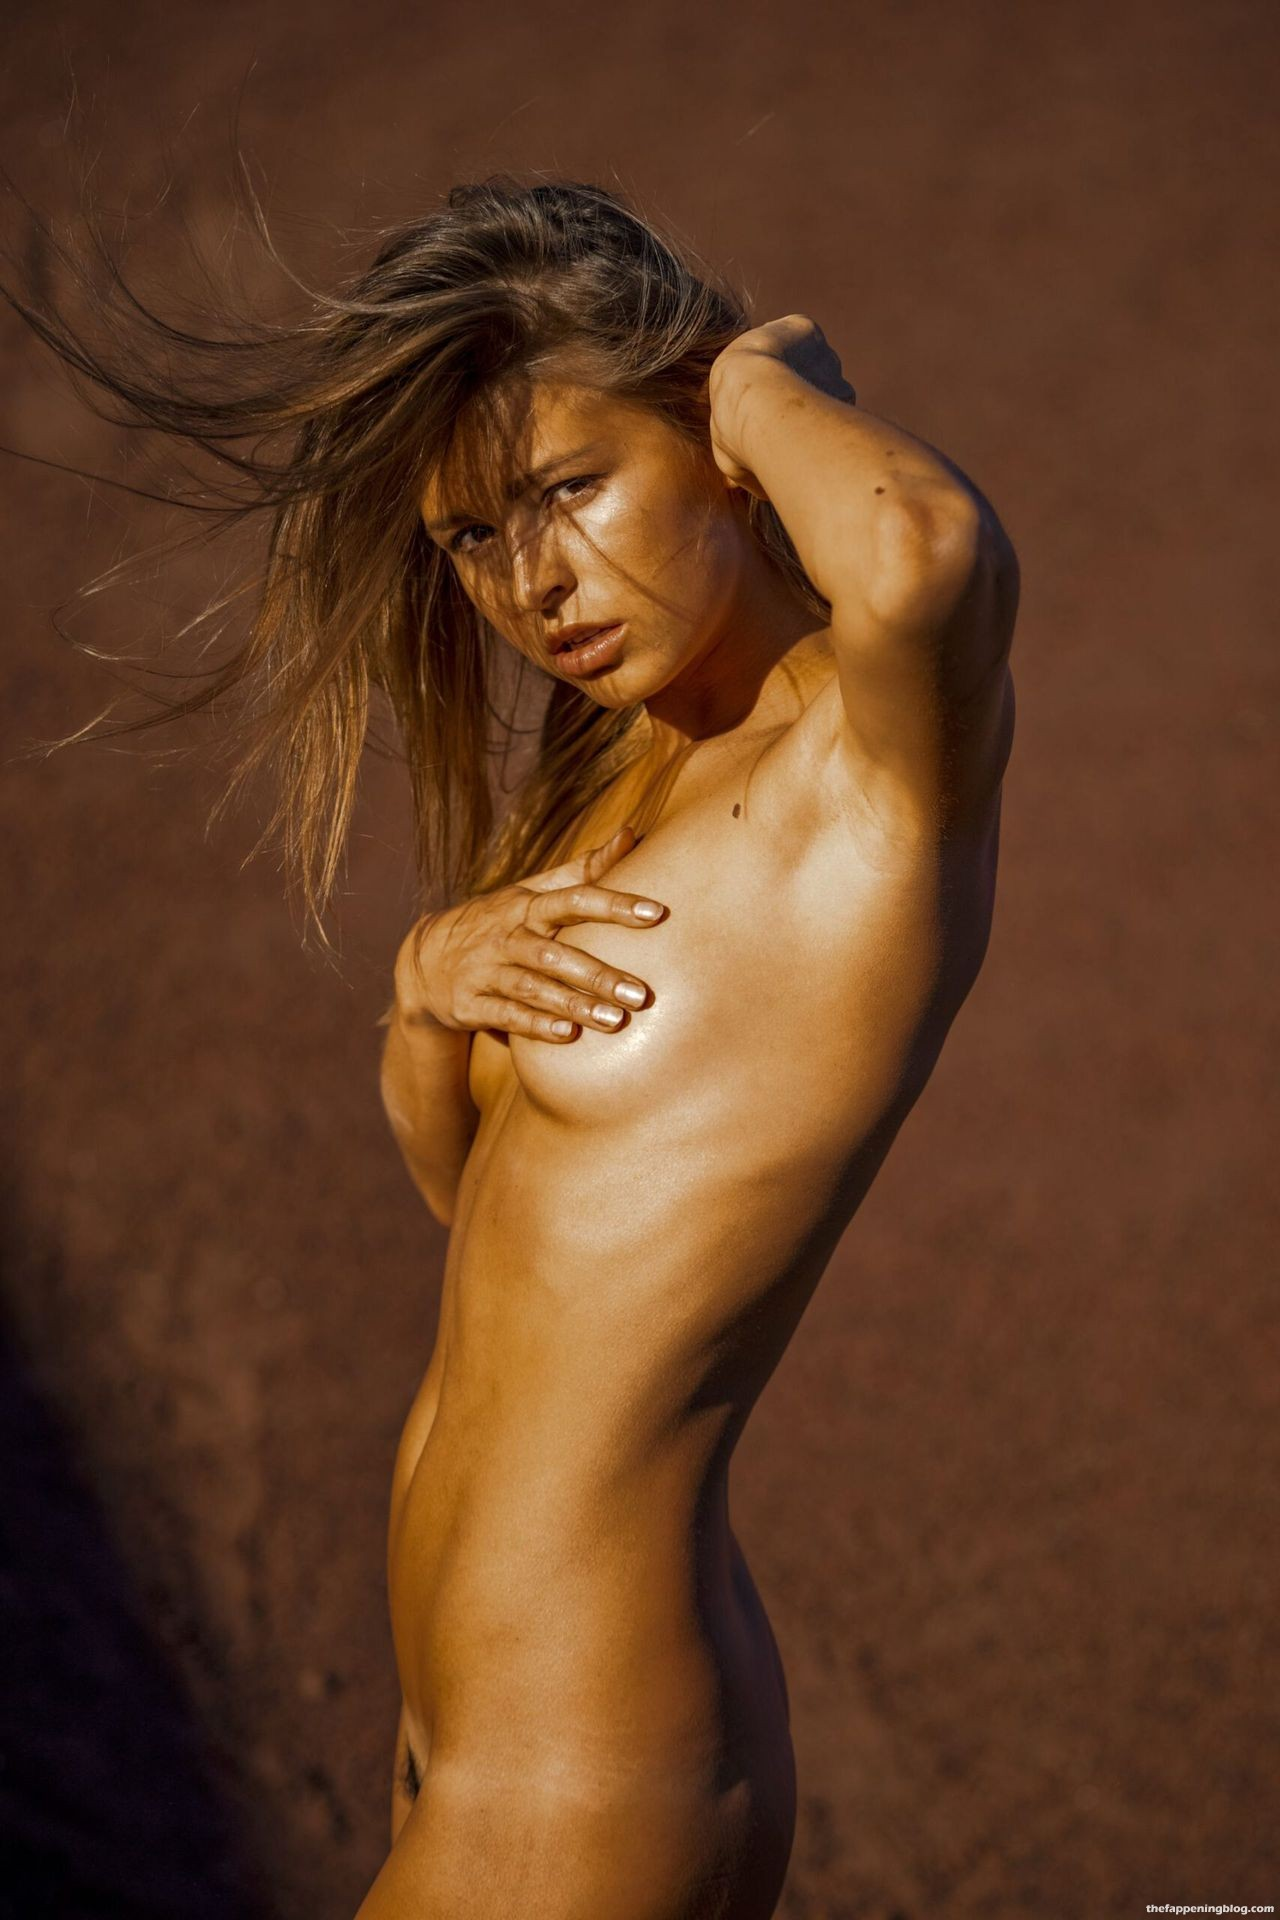 Marisa-Papen-Stunning-Naked-Body-31-scaled1-thefappeningblog.com_.jpg